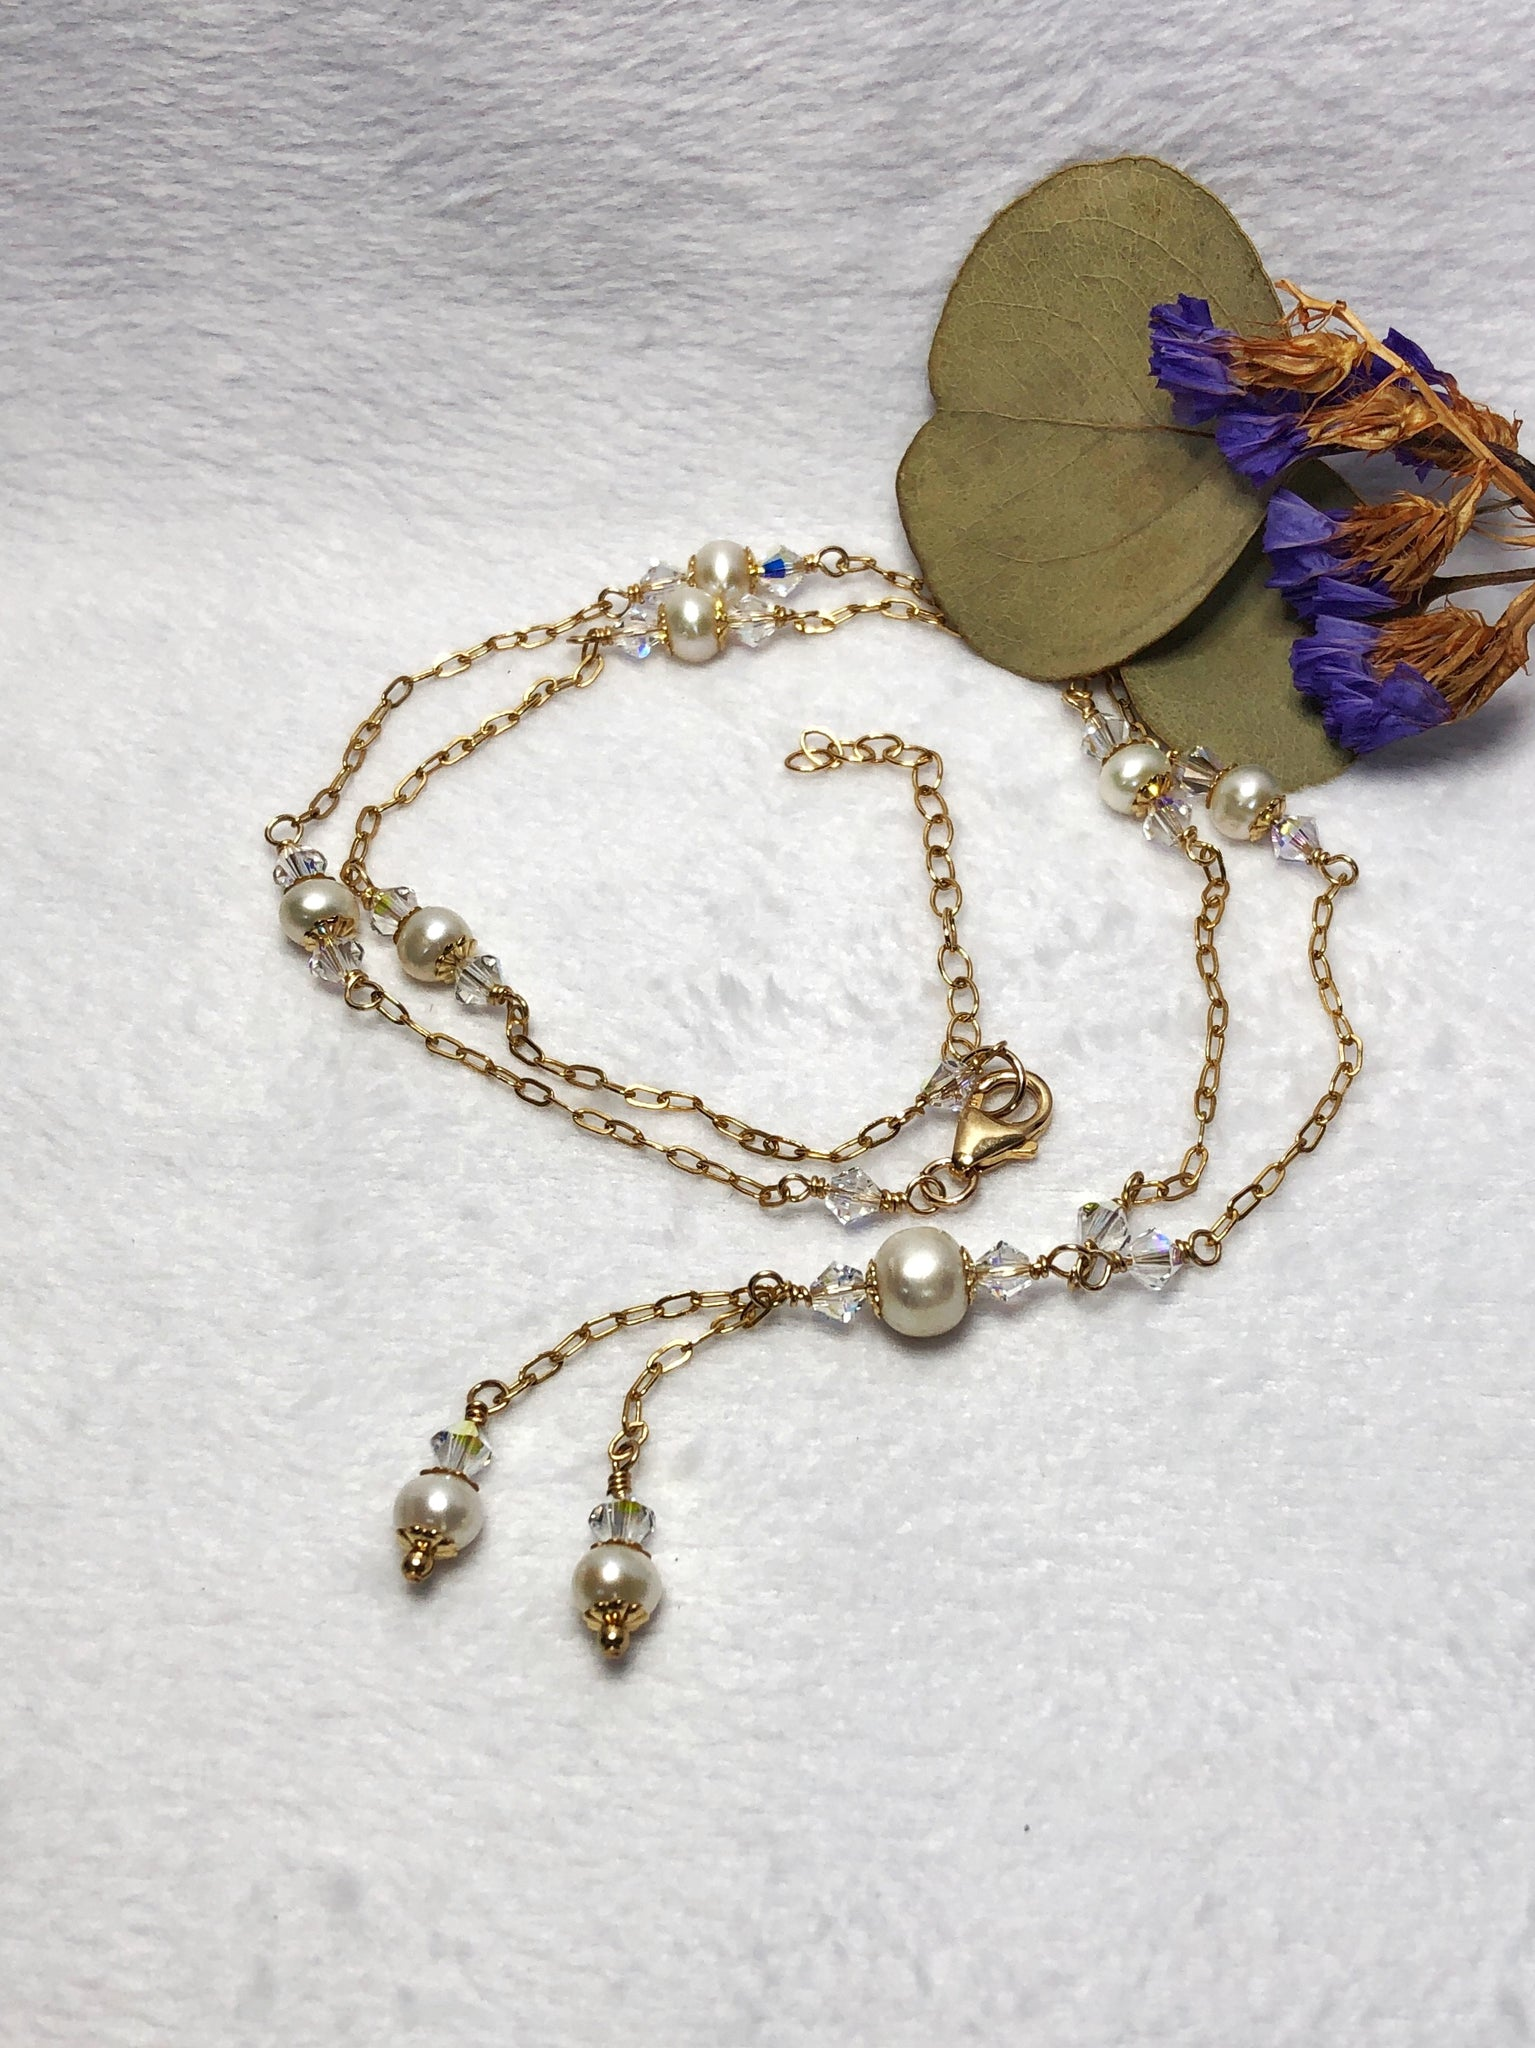 Freshwater pearl Swarovski crystal gold filled necklace laying flat on a white background